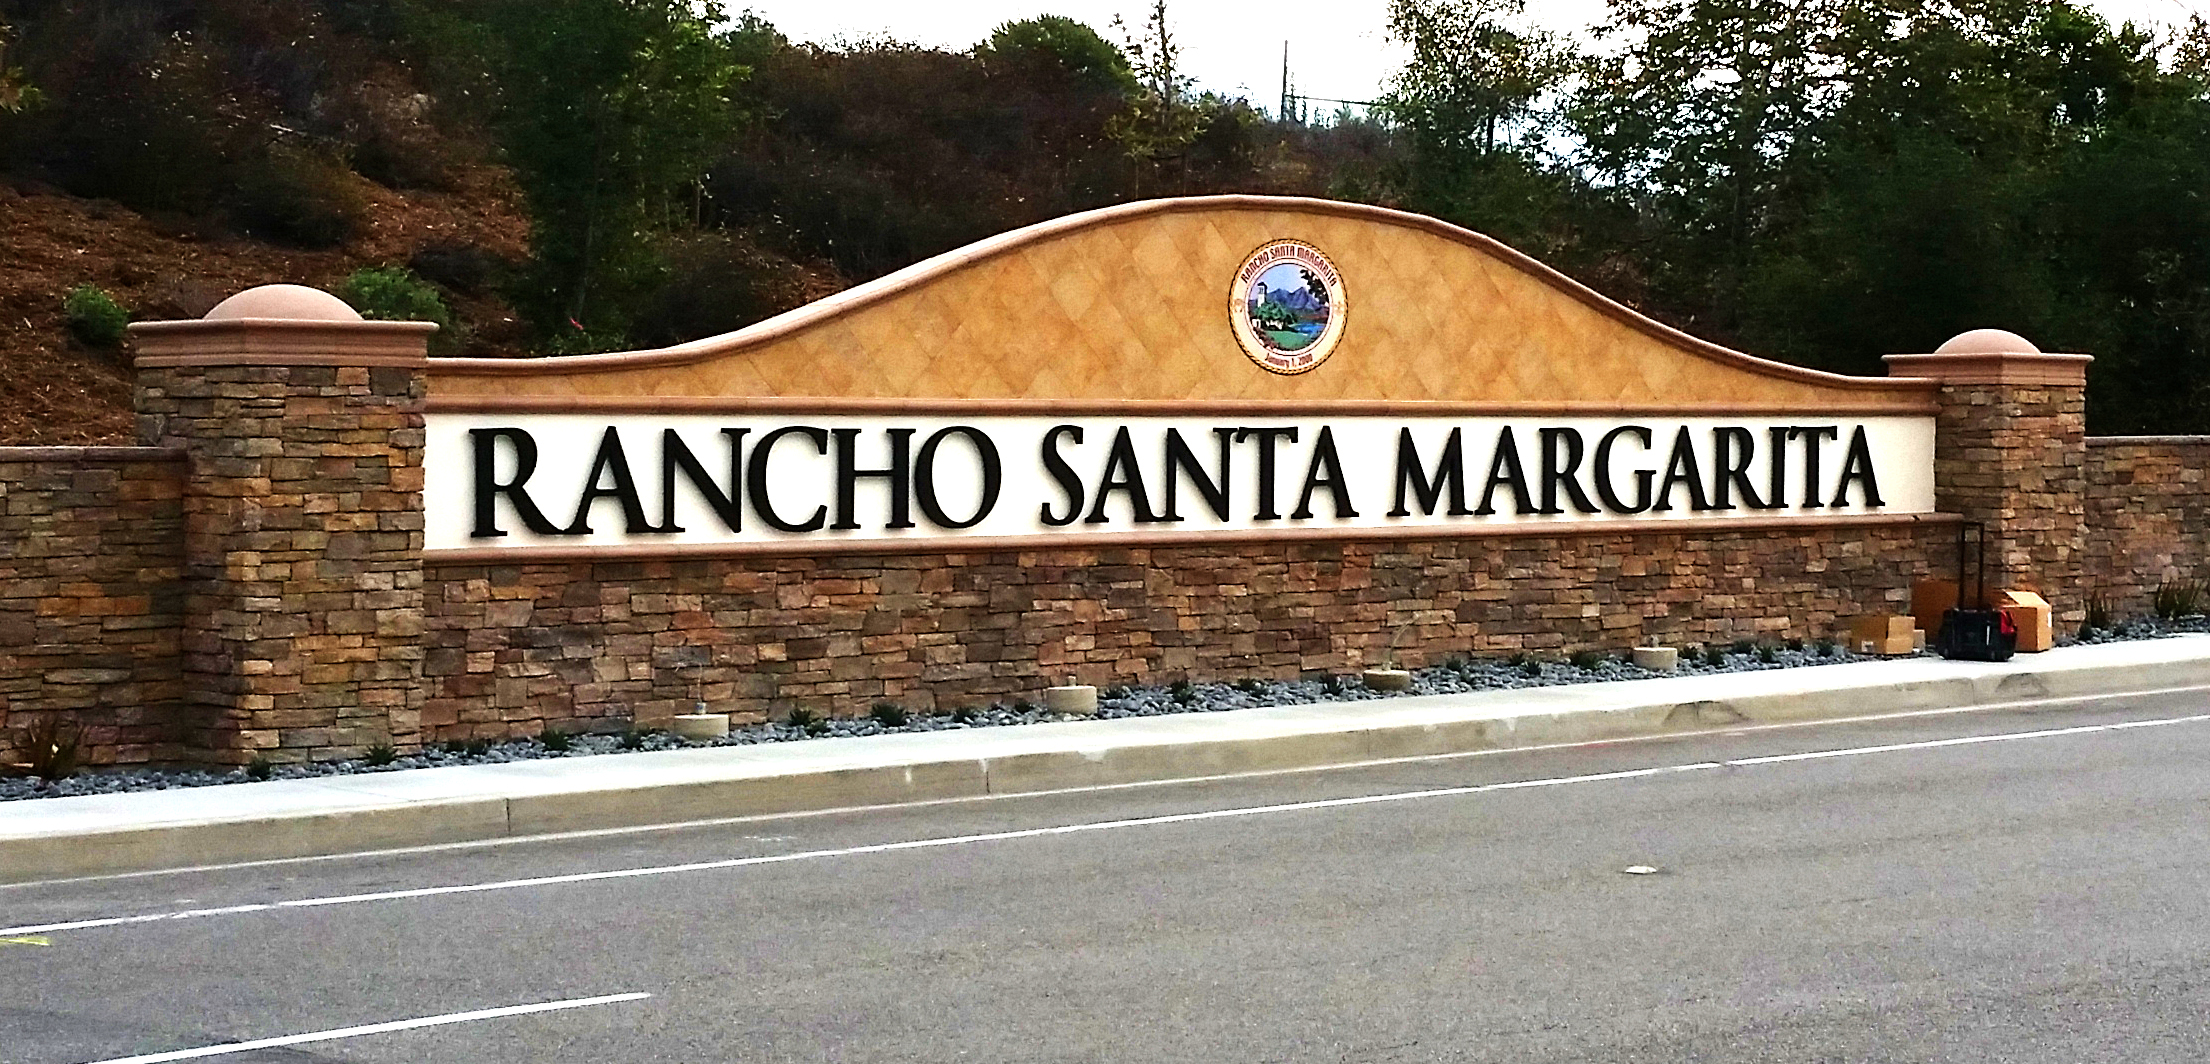 Rancho Santa Margarita City - Sign Depot Inc.